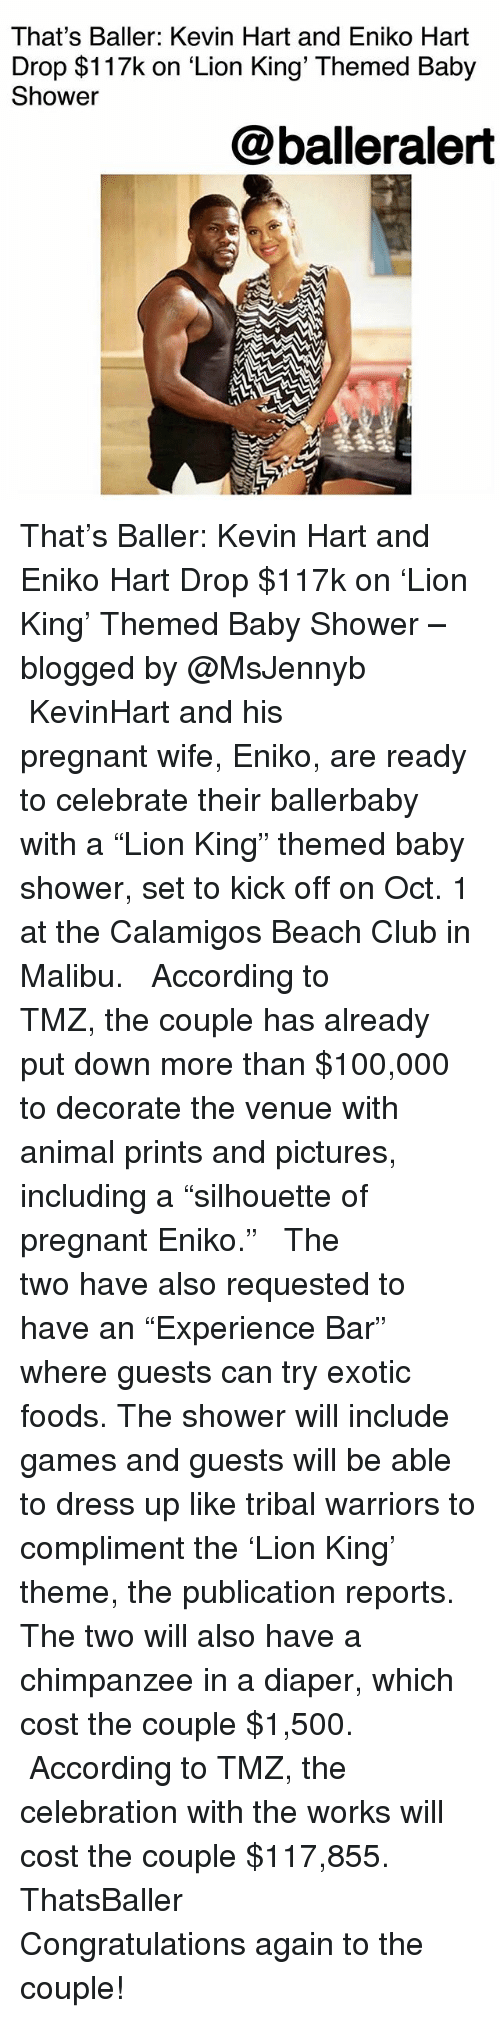 """Pregnant Wife: That's Baller: Kevin Hart and Eniko Hart  Drop $117k on 'Lion King' Themed Baby  Shower  @balleralert That's Baller: Kevin Hart and Eniko Hart Drop $117k on 'Lion King' Themed Baby Shower – blogged by @MsJennyb ⠀⠀⠀⠀⠀⠀⠀ ⠀⠀⠀⠀⠀⠀⠀ KevinHart and his pregnant wife, Eniko, are ready to celebrate their ballerbaby with a """"Lion King"""" themed baby shower, set to kick off on Oct. 1 at the Calamigos Beach Club in Malibu. ⠀⠀⠀⠀⠀⠀⠀ ⠀⠀⠀⠀⠀⠀⠀ According to TMZ, the couple has already put down more than $100,000 to decorate the venue with animal prints and pictures, including a """"silhouette of pregnant Eniko."""" ⠀⠀⠀⠀⠀⠀⠀ ⠀⠀⠀⠀⠀⠀⠀ The two have also requested to have an """"Experience Bar"""" where guests can try exotic foods. The shower will include games and guests will be able to dress up like tribal warriors to compliment the 'Lion King' theme, the publication reports. The two will also have a chimpanzee in a diaper, which cost the couple $1,500. ⠀⠀⠀⠀⠀⠀⠀ ⠀⠀⠀⠀⠀⠀⠀ According to TMZ, the celebration with the works will cost the couple $117,855. ThatsBaller ⠀⠀⠀⠀⠀⠀⠀ ⠀⠀⠀⠀⠀⠀⠀ Congratulations again to the couple!"""